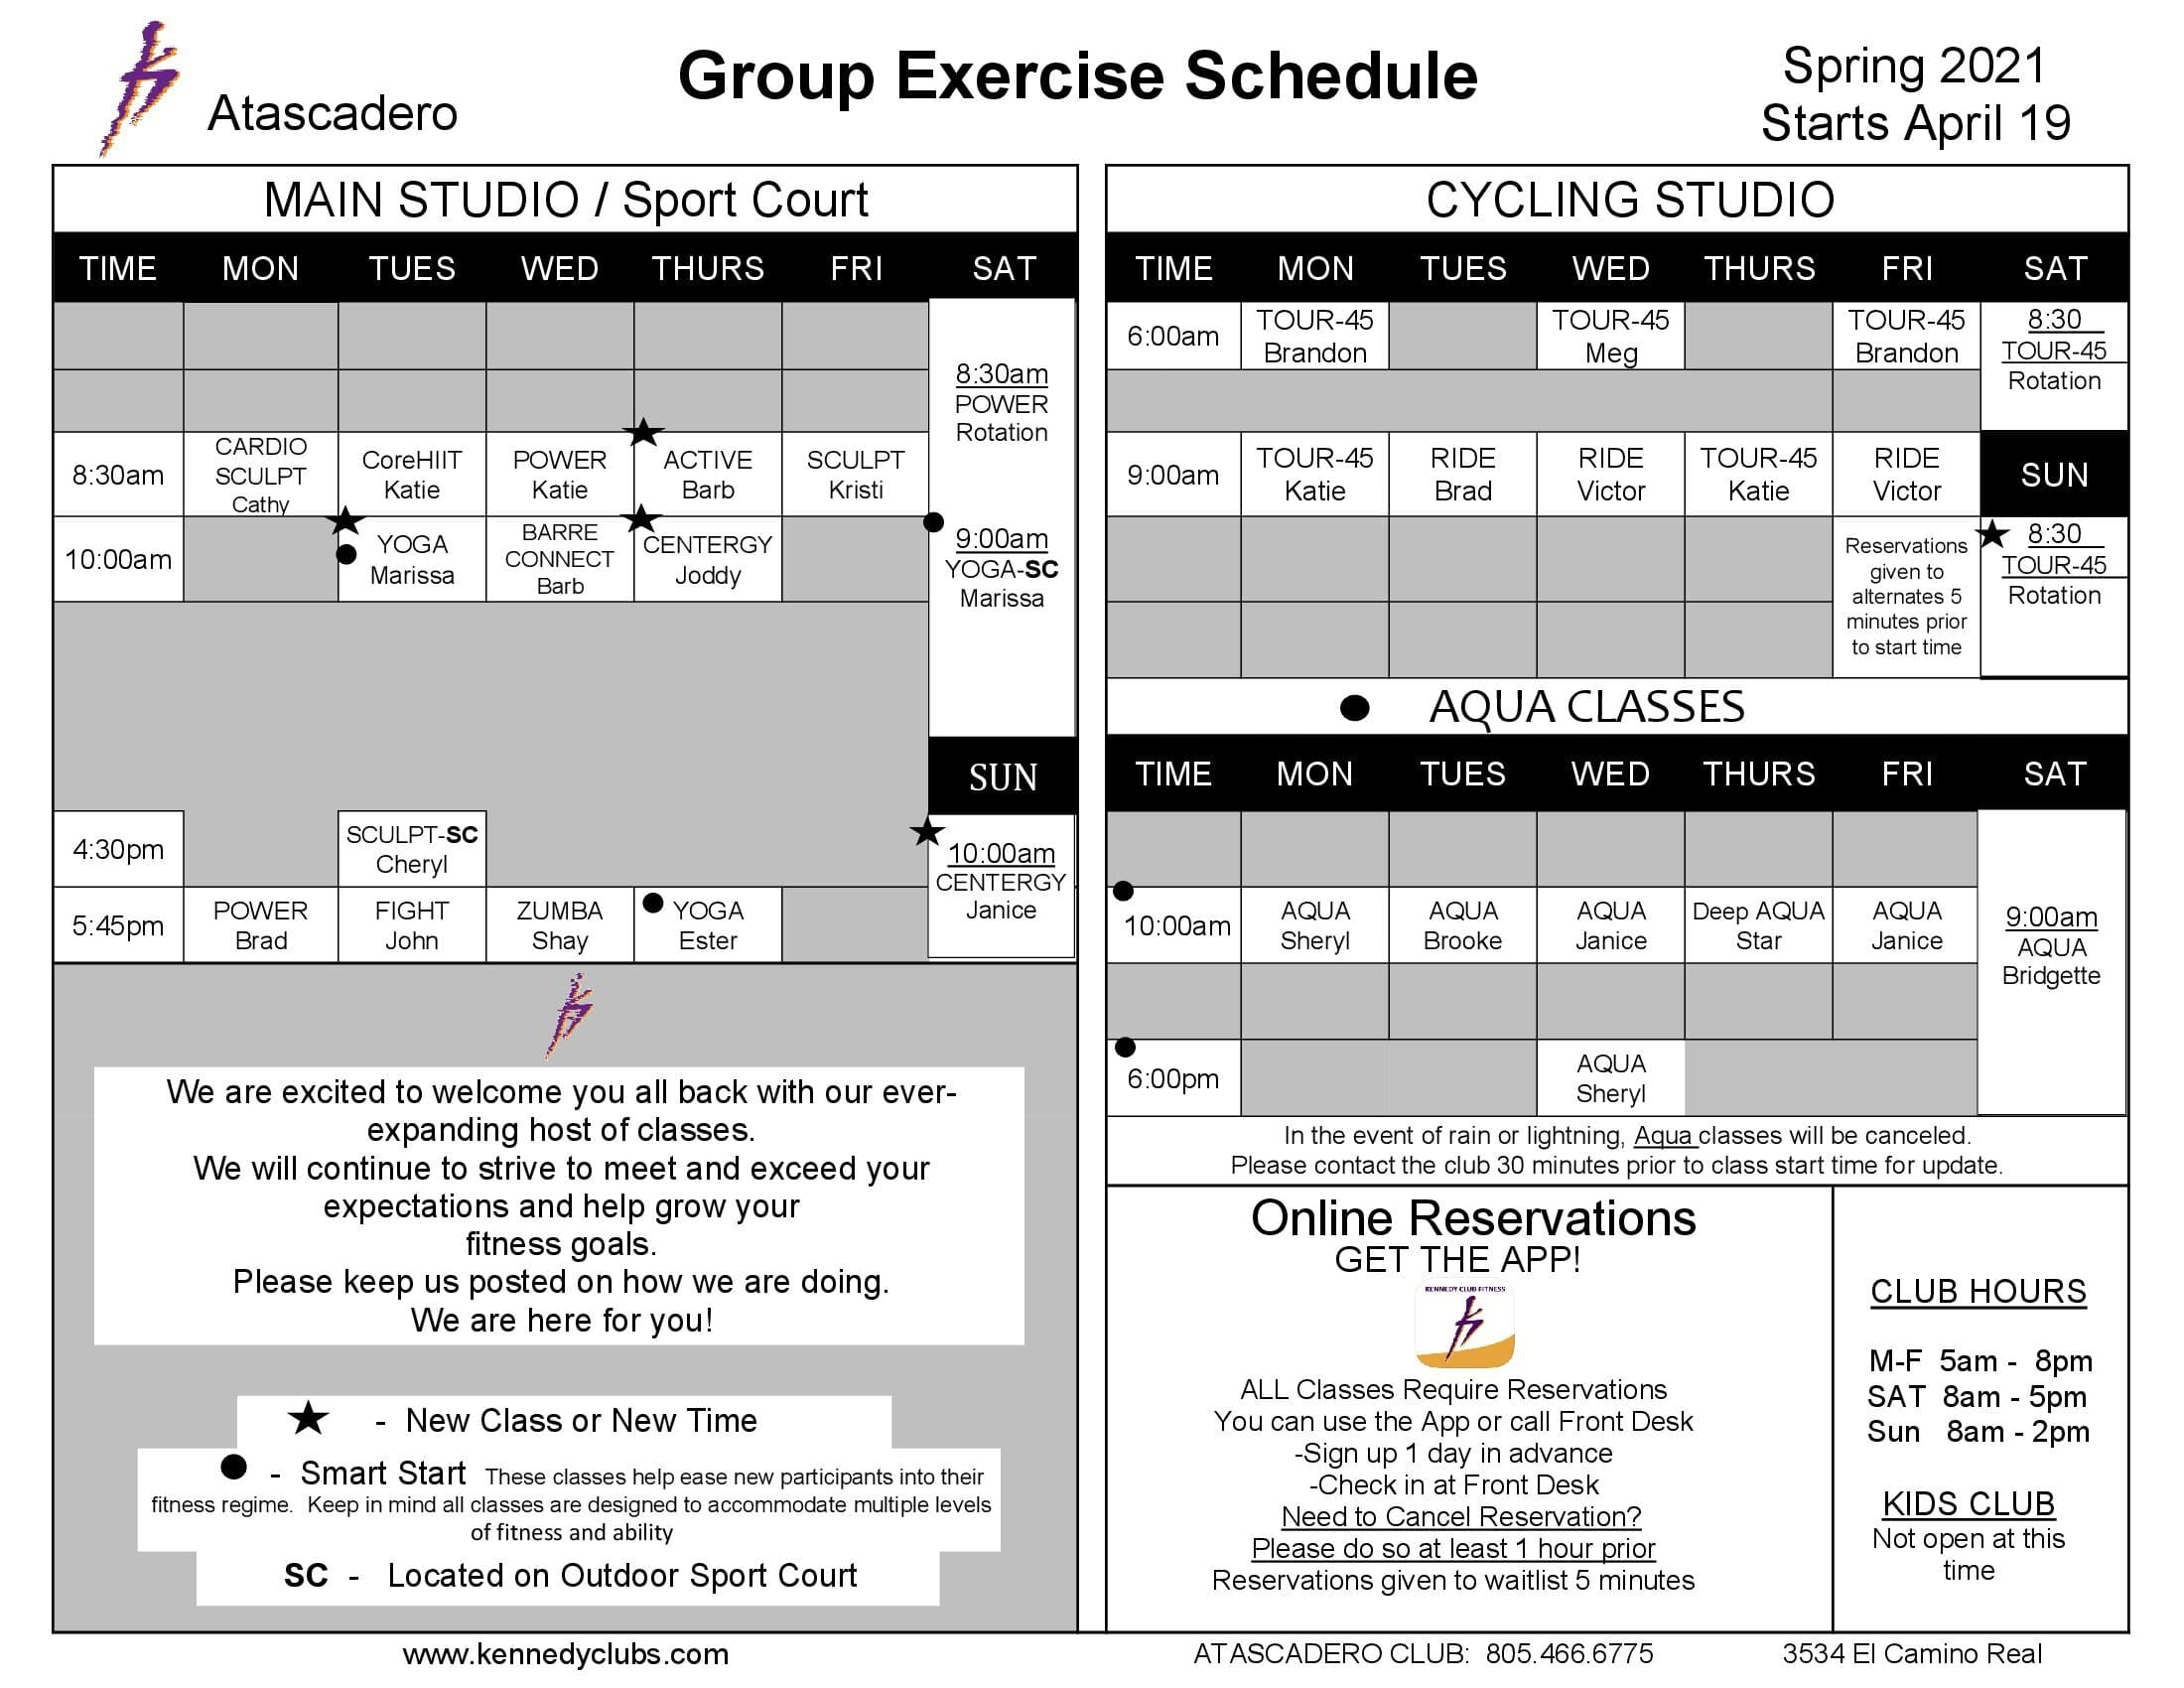 Kennedy Club Fitness Atascadero Group Exercise Schedule 04 15 2021